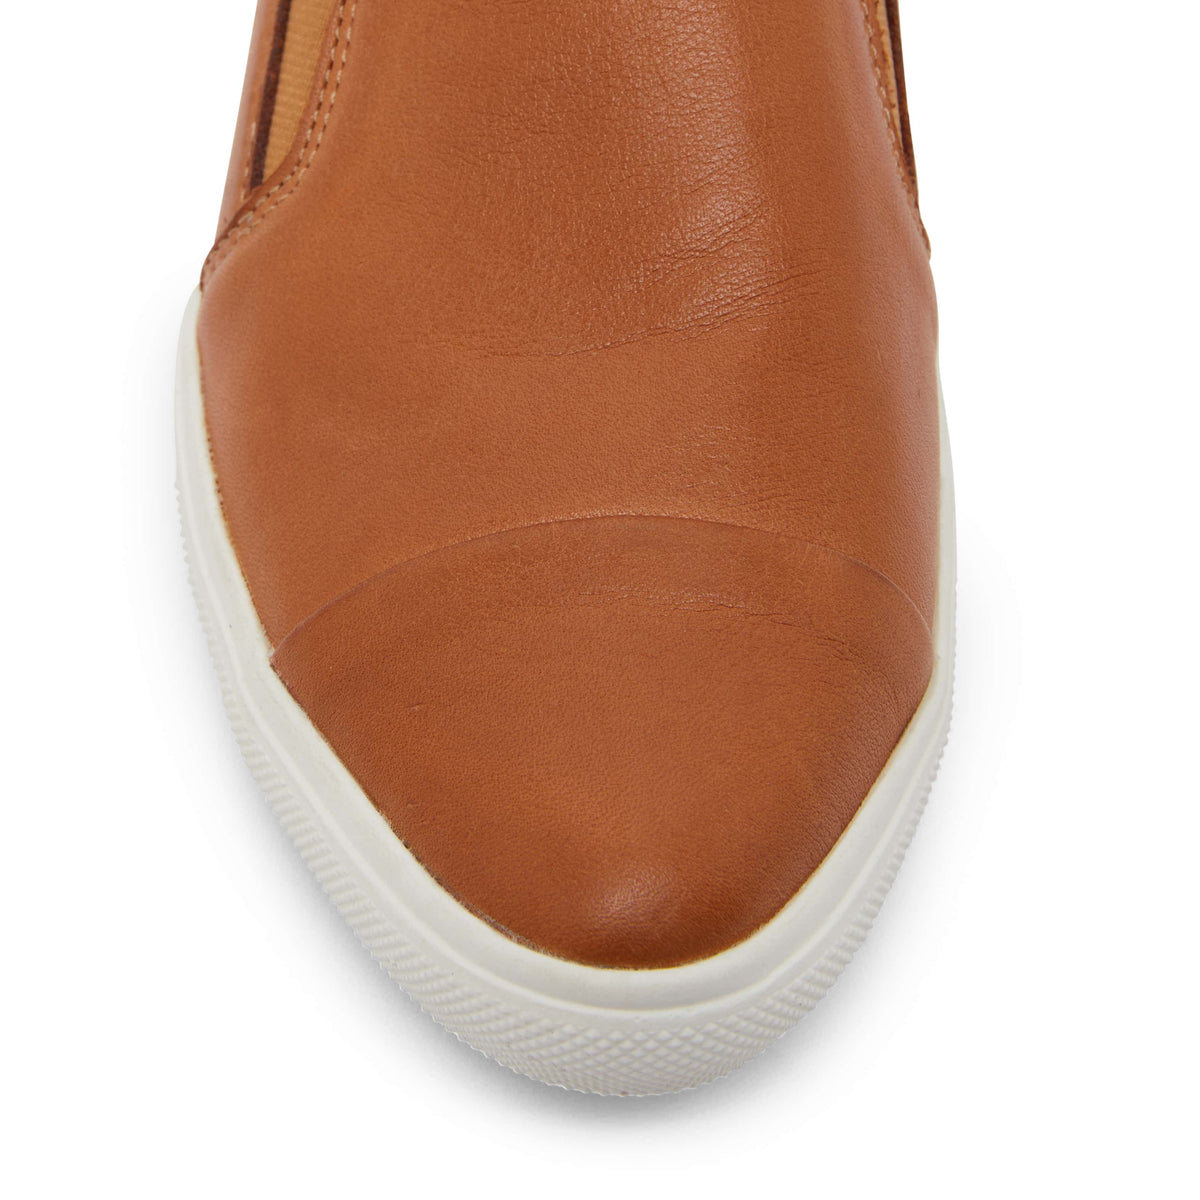 Tandem Sneaker in Tan Leather